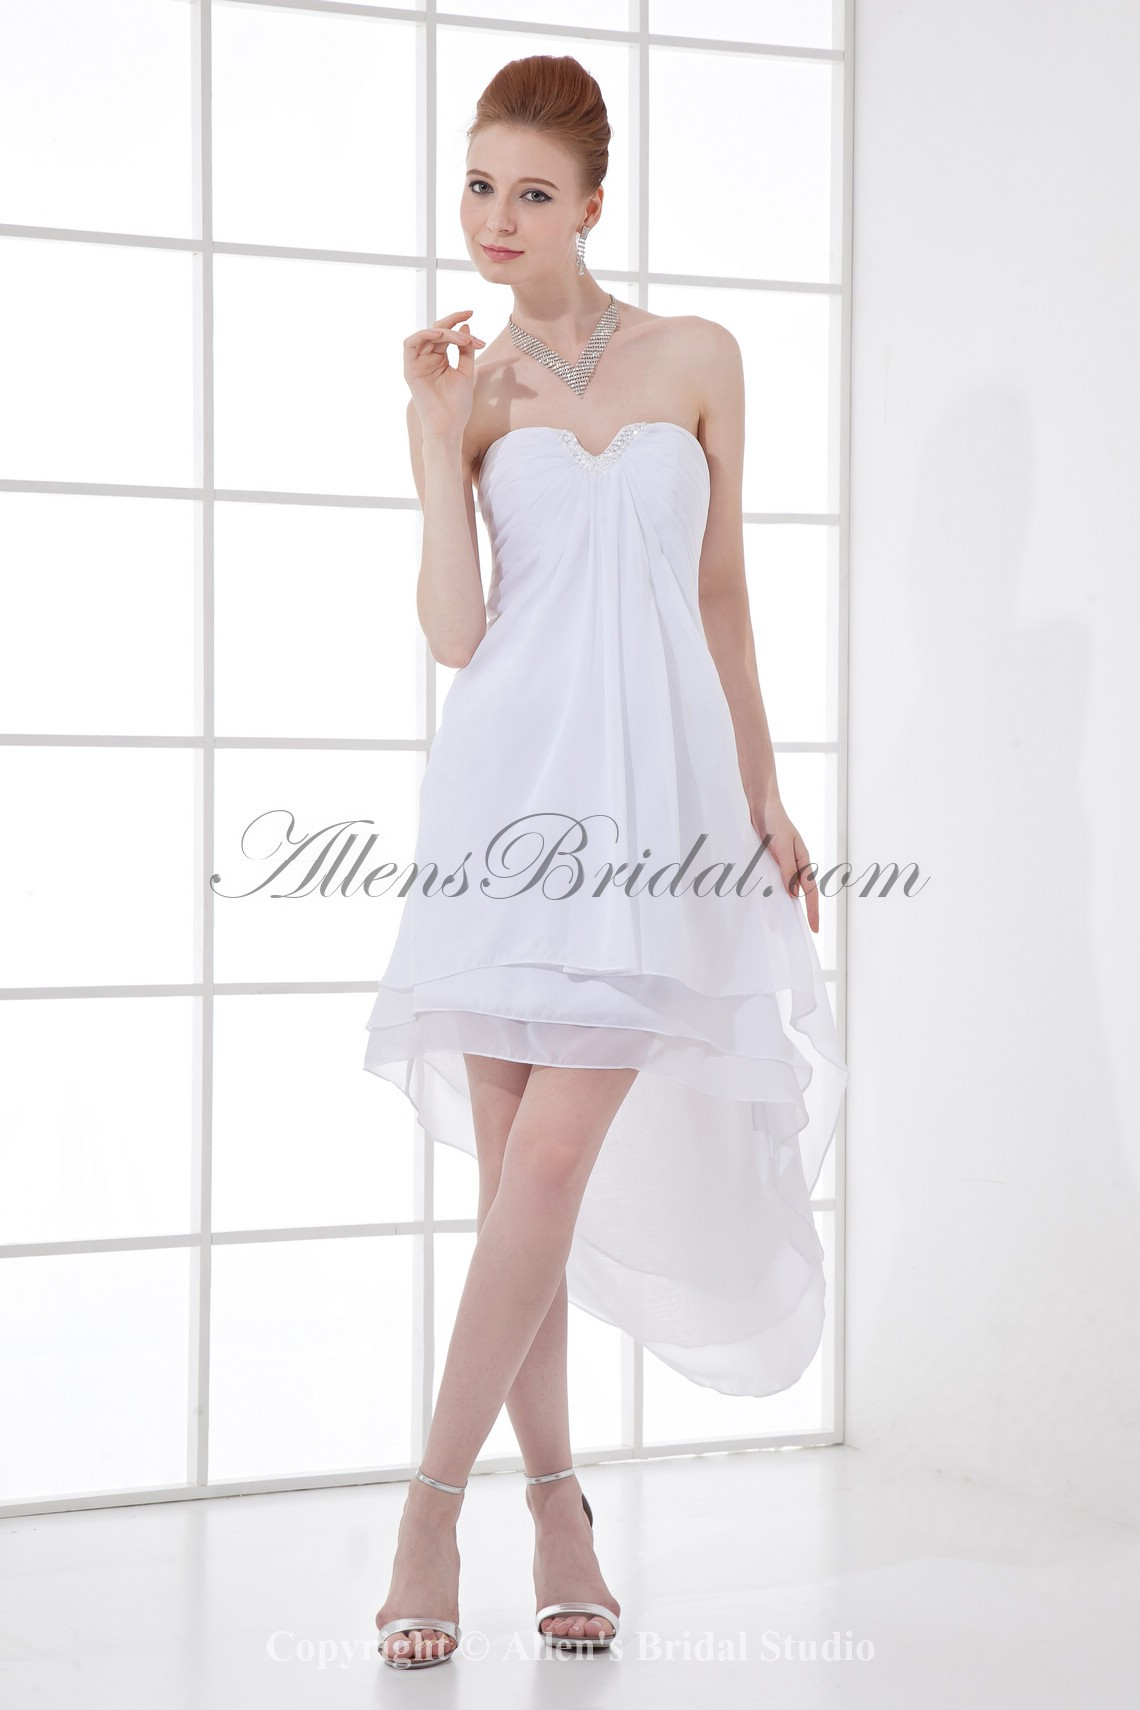 /115-913/chiffon-sweetheart-neckline-column-short-cocktail-dress.jpg